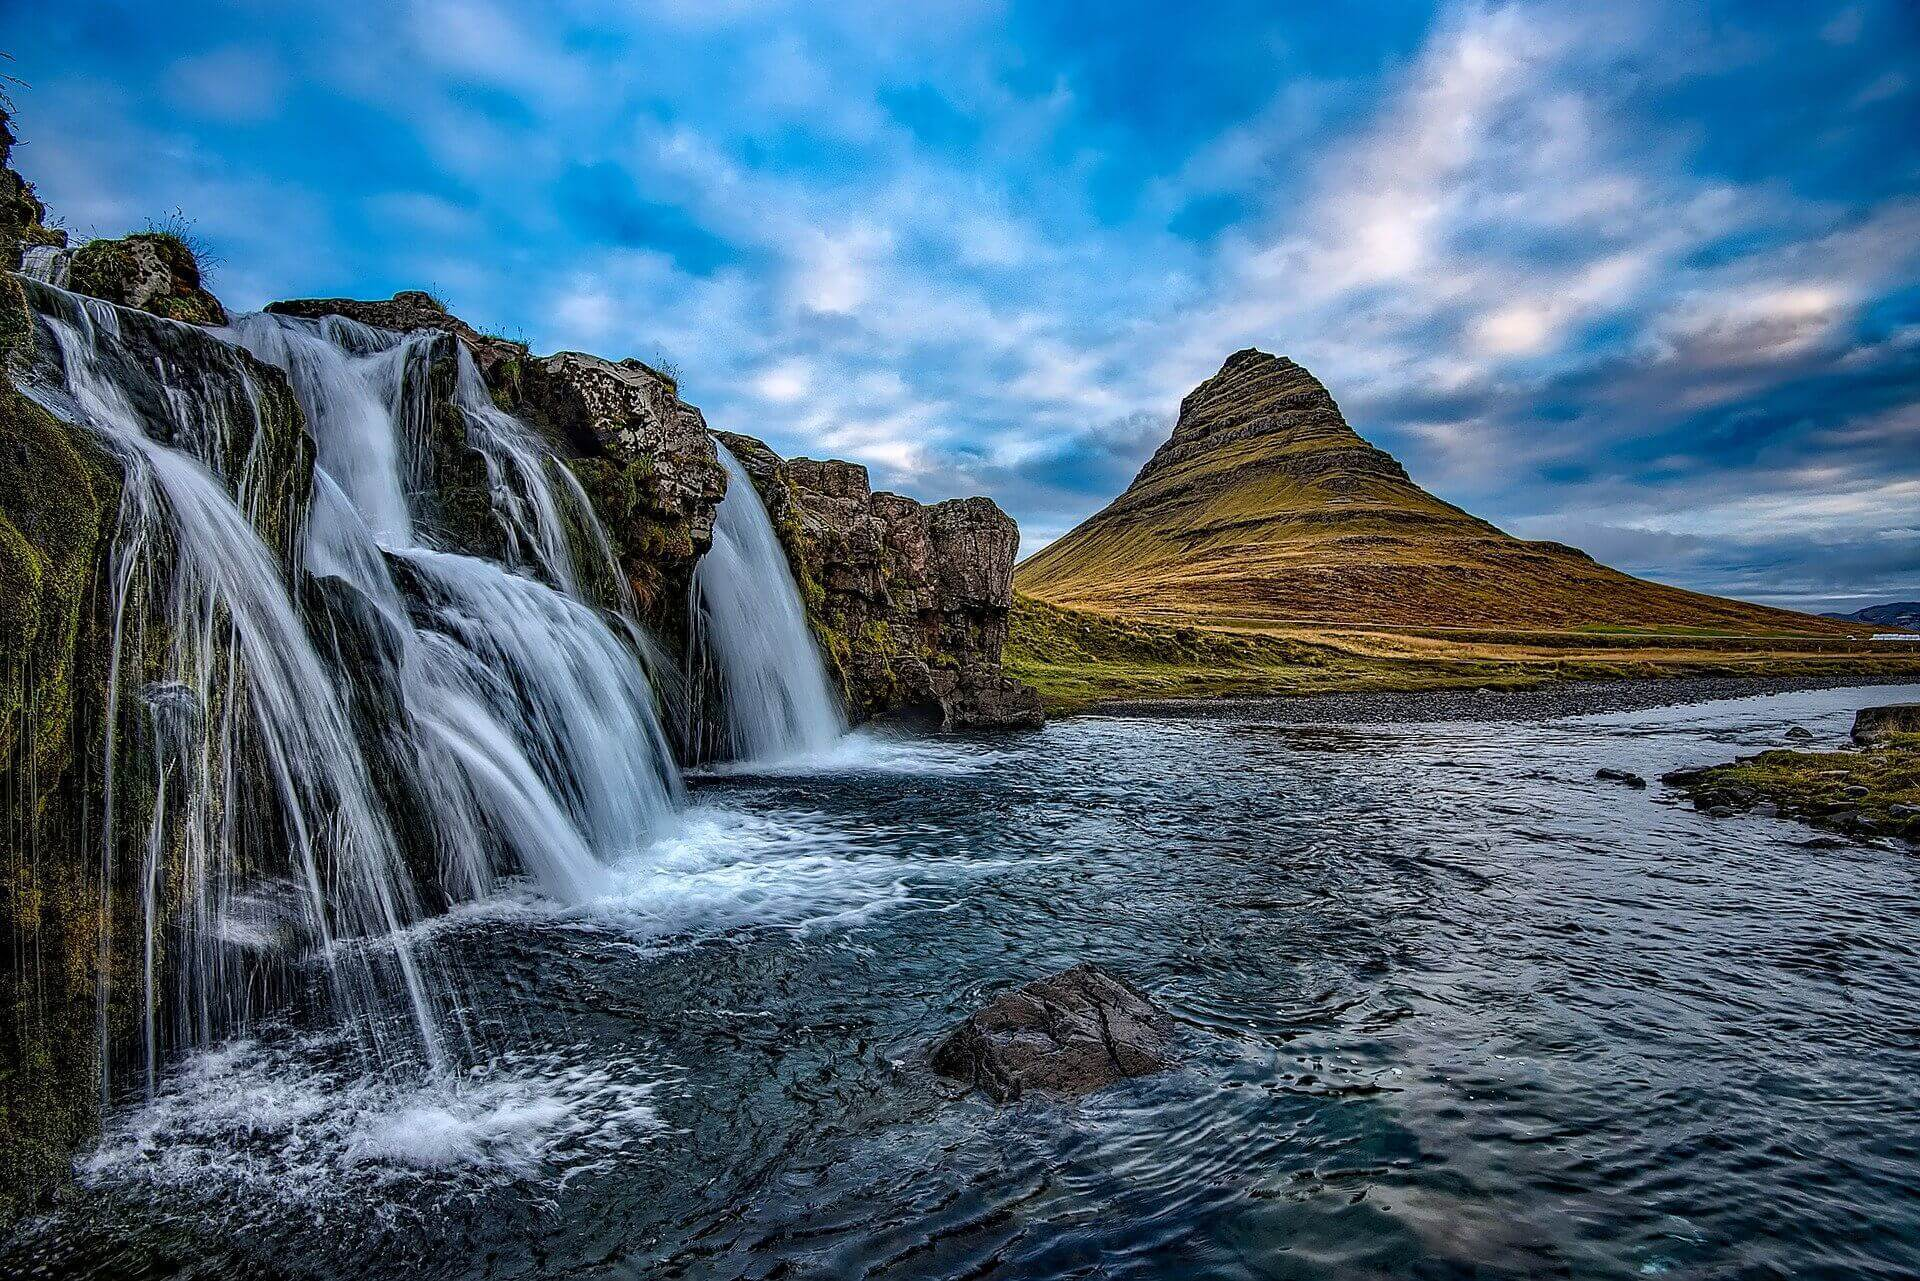 Where should I stay in Iceland